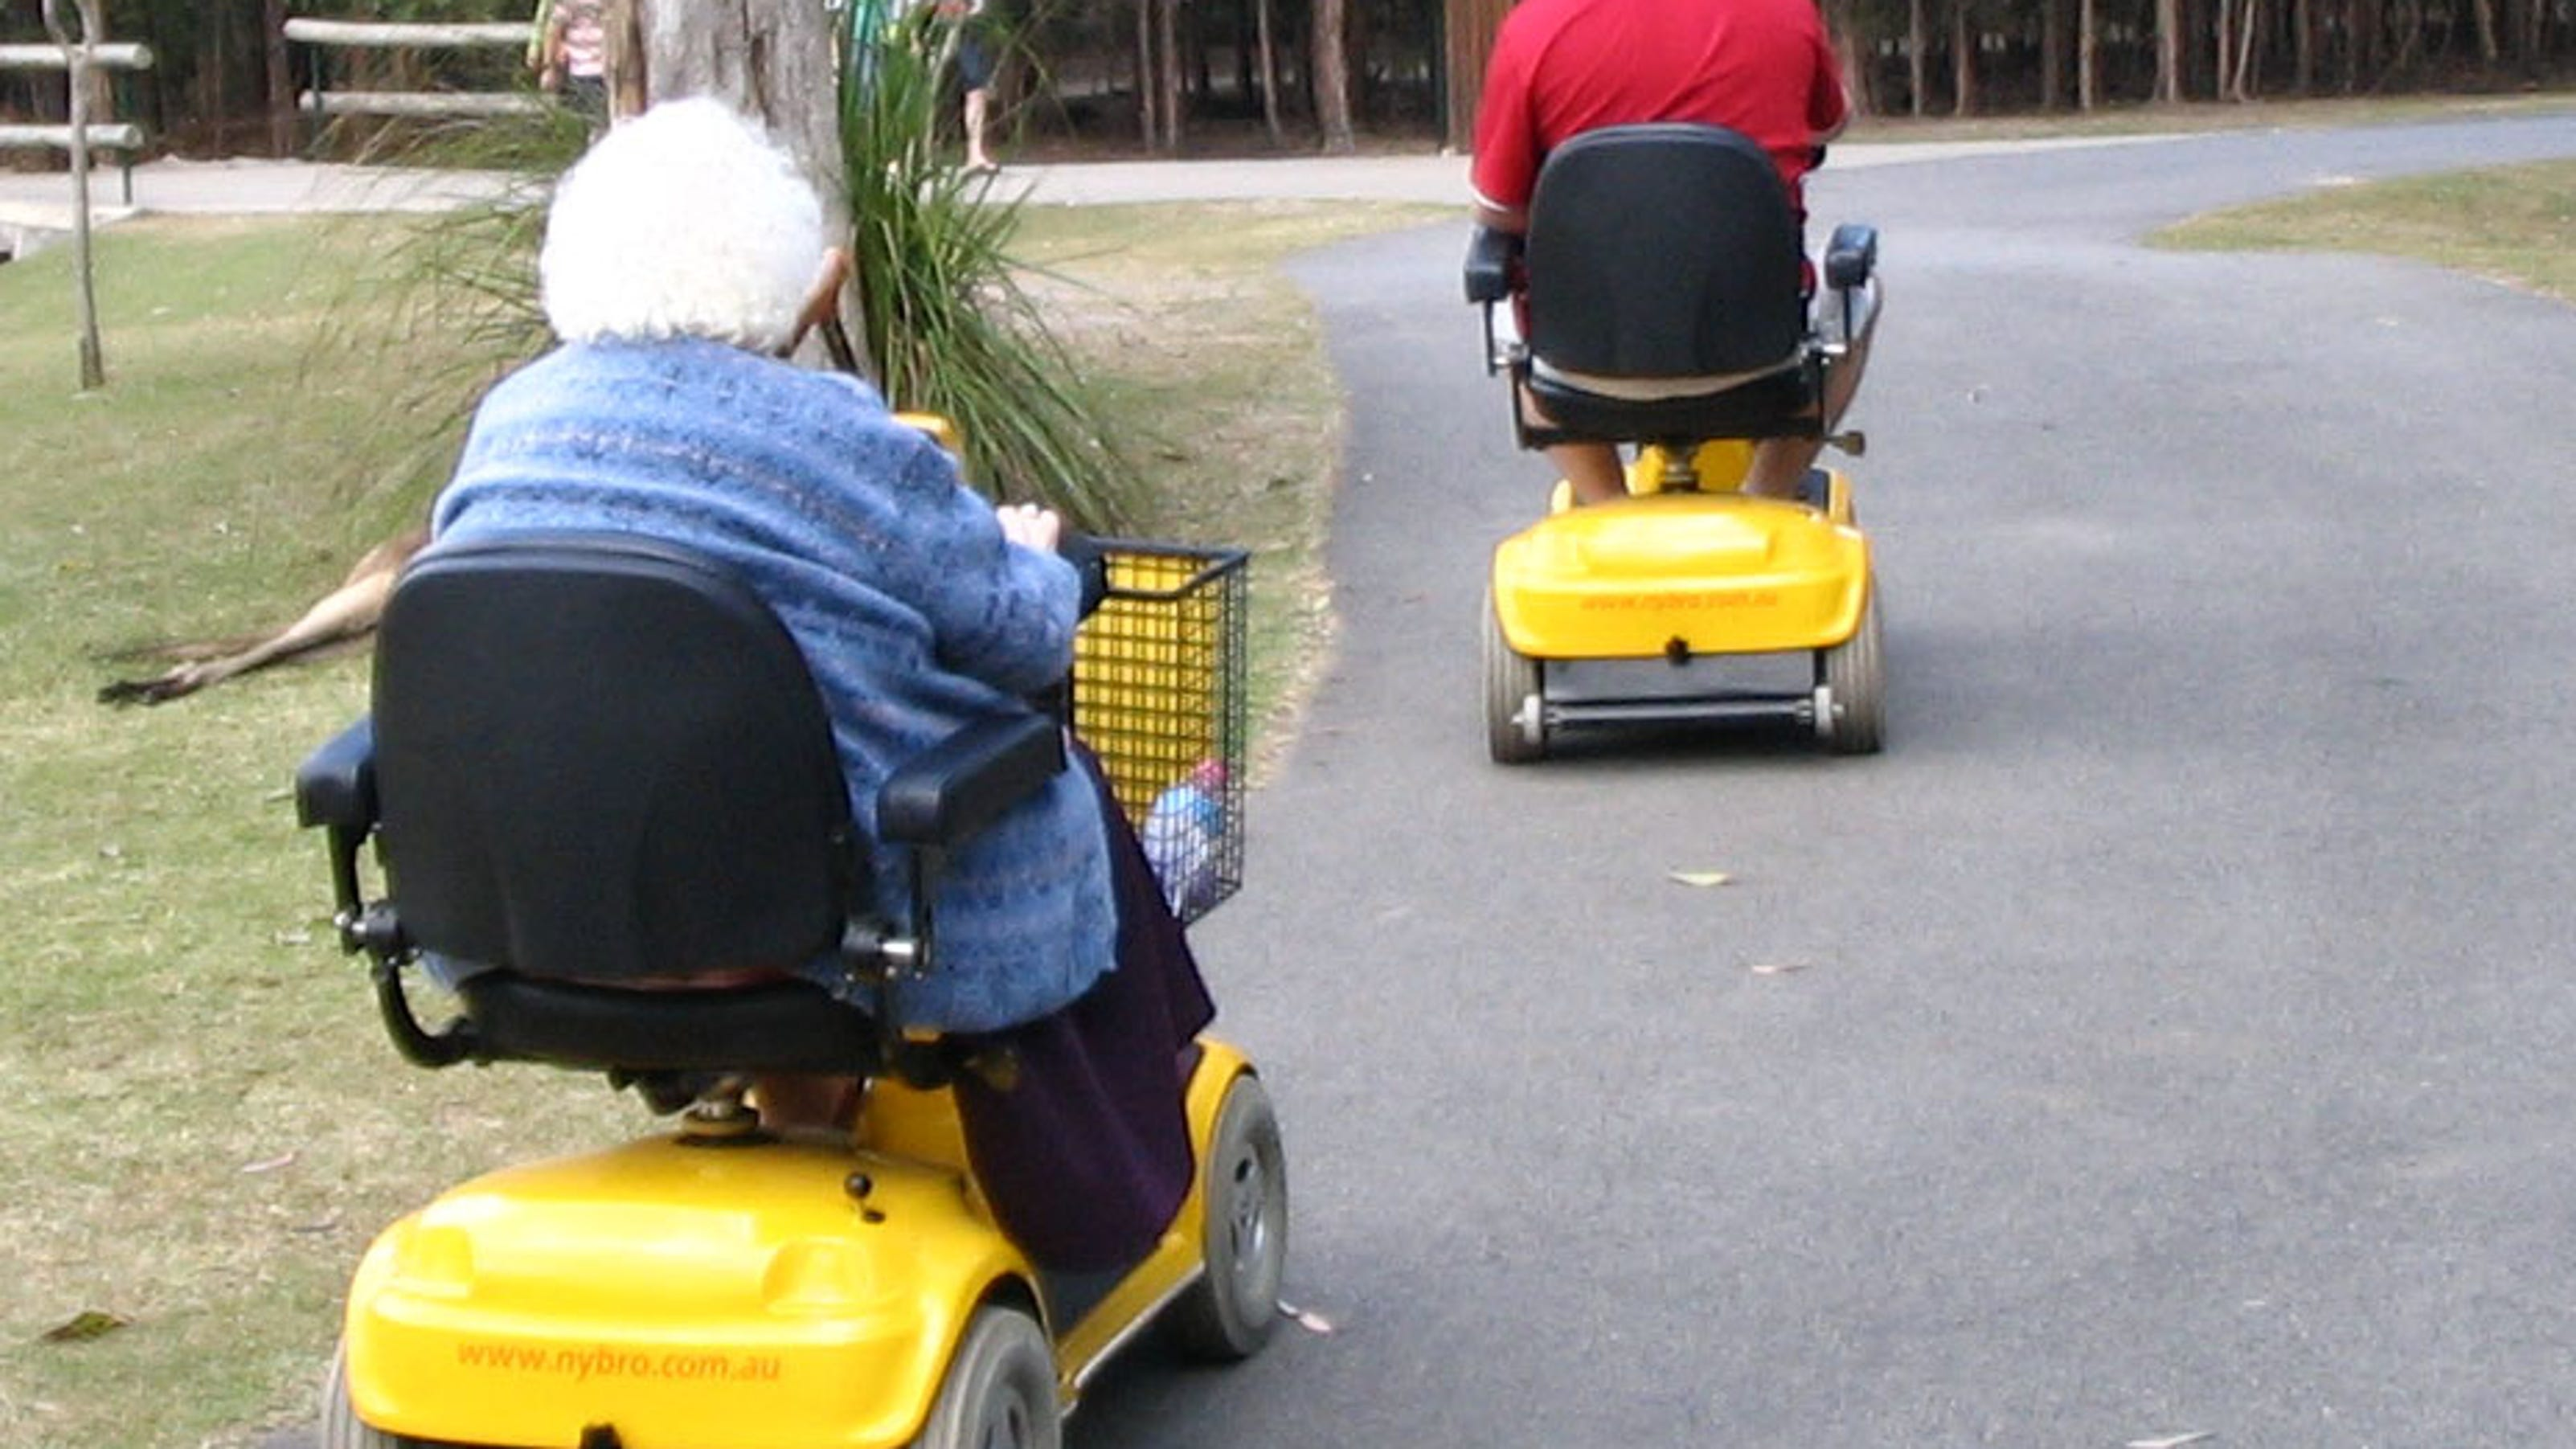 Medicare will cover scooters wheelchairs for Does medicare cover motorized wheelchairs